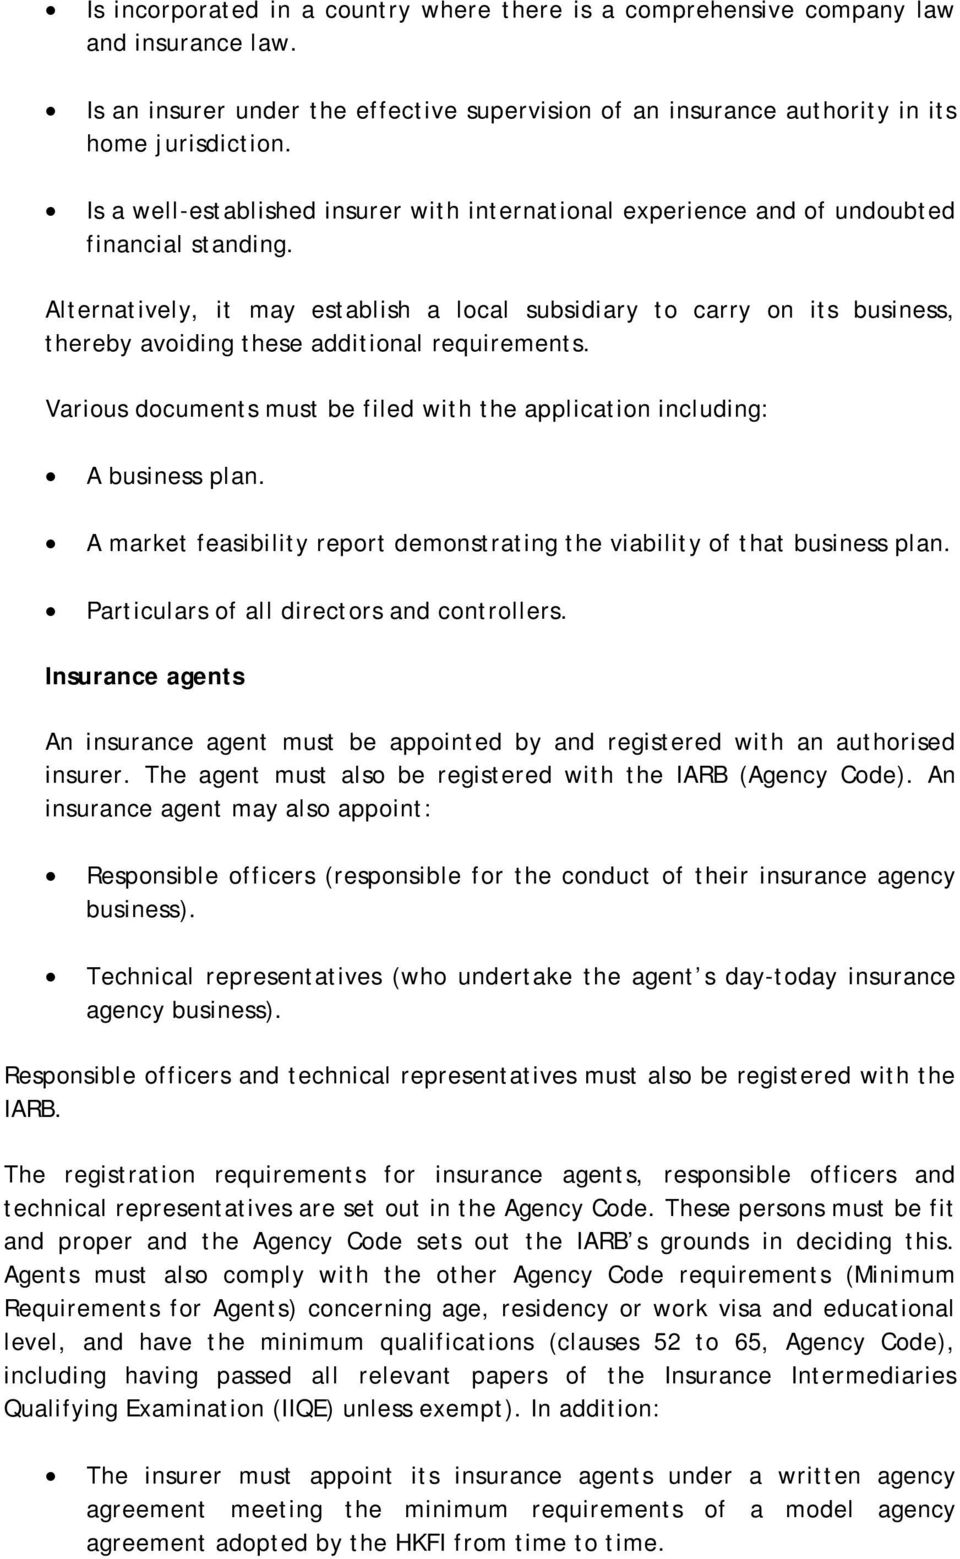 Alternatively, it may establish a lcal subsidiary t carry n its business, thereby aviding these additinal requirements. Varius dcuments must be filed with the applicatin including: A business plan.